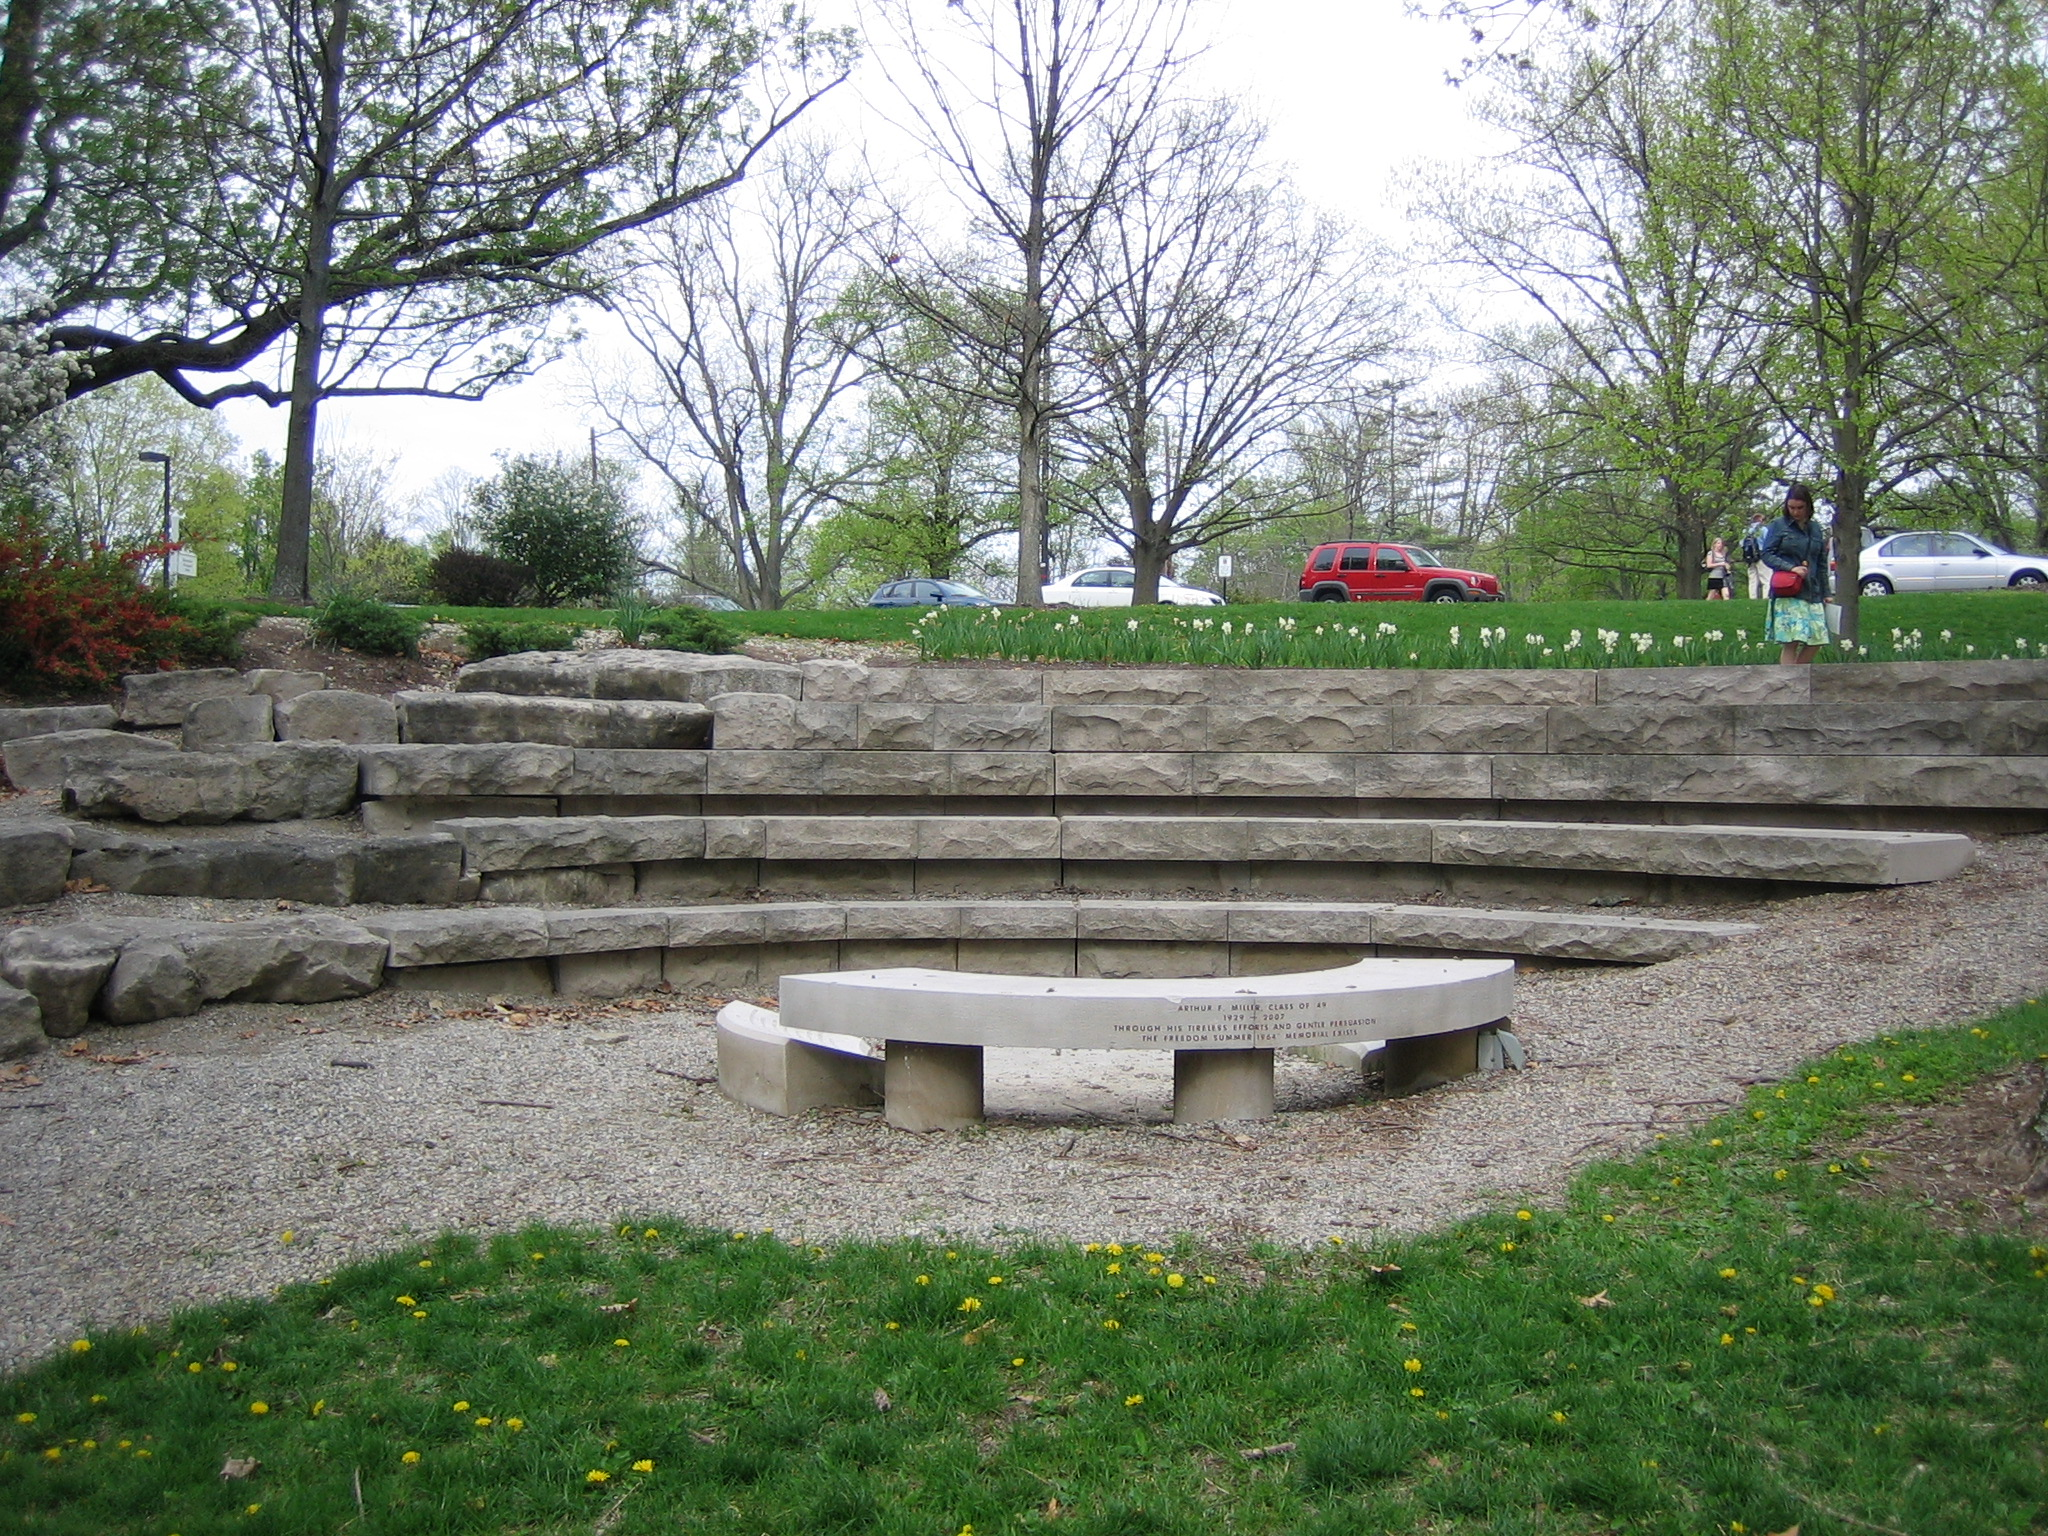 The Freedom Summer Memorial on the Miami University Campus